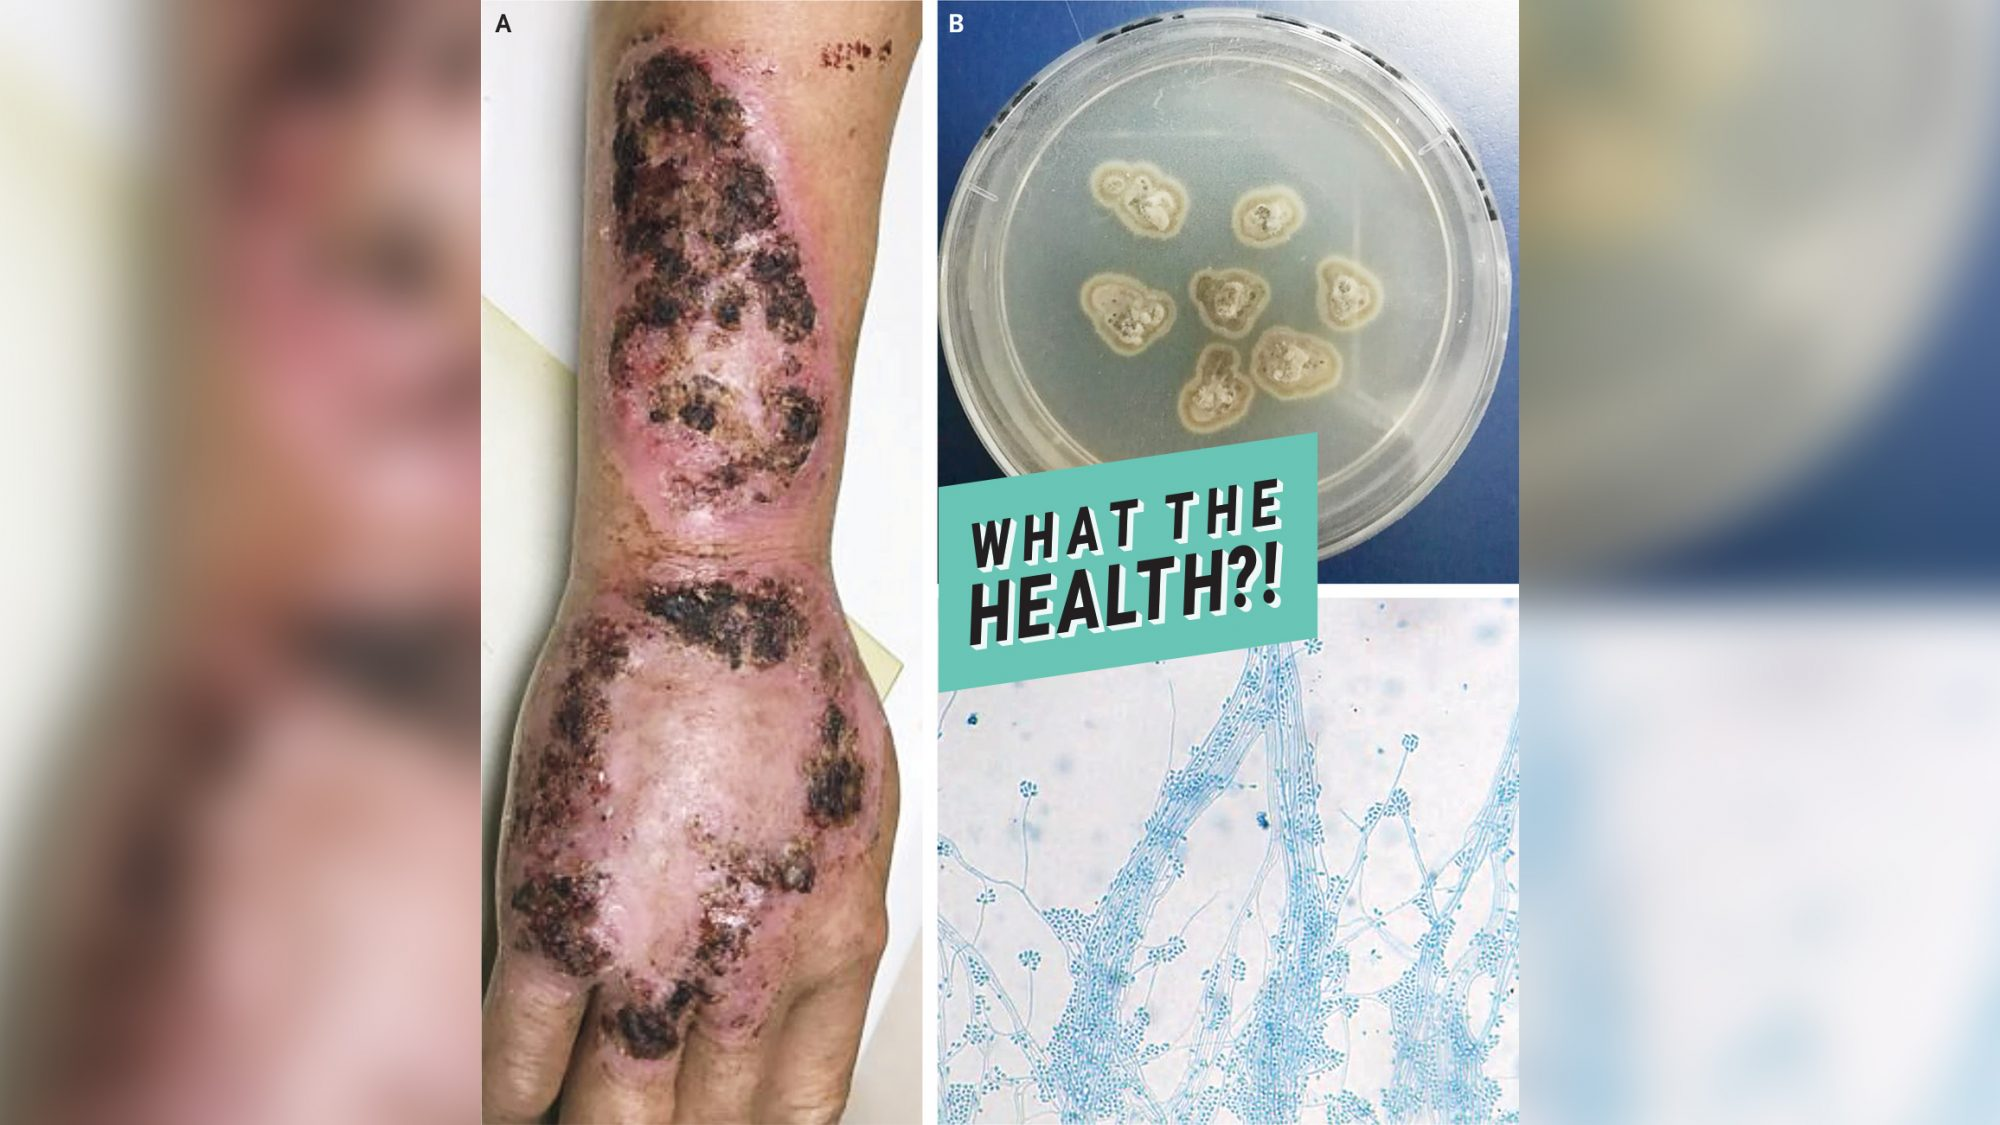 This Man's Weird Rash Turned Out to Be a Fungal Infection You Can Get From Gardening